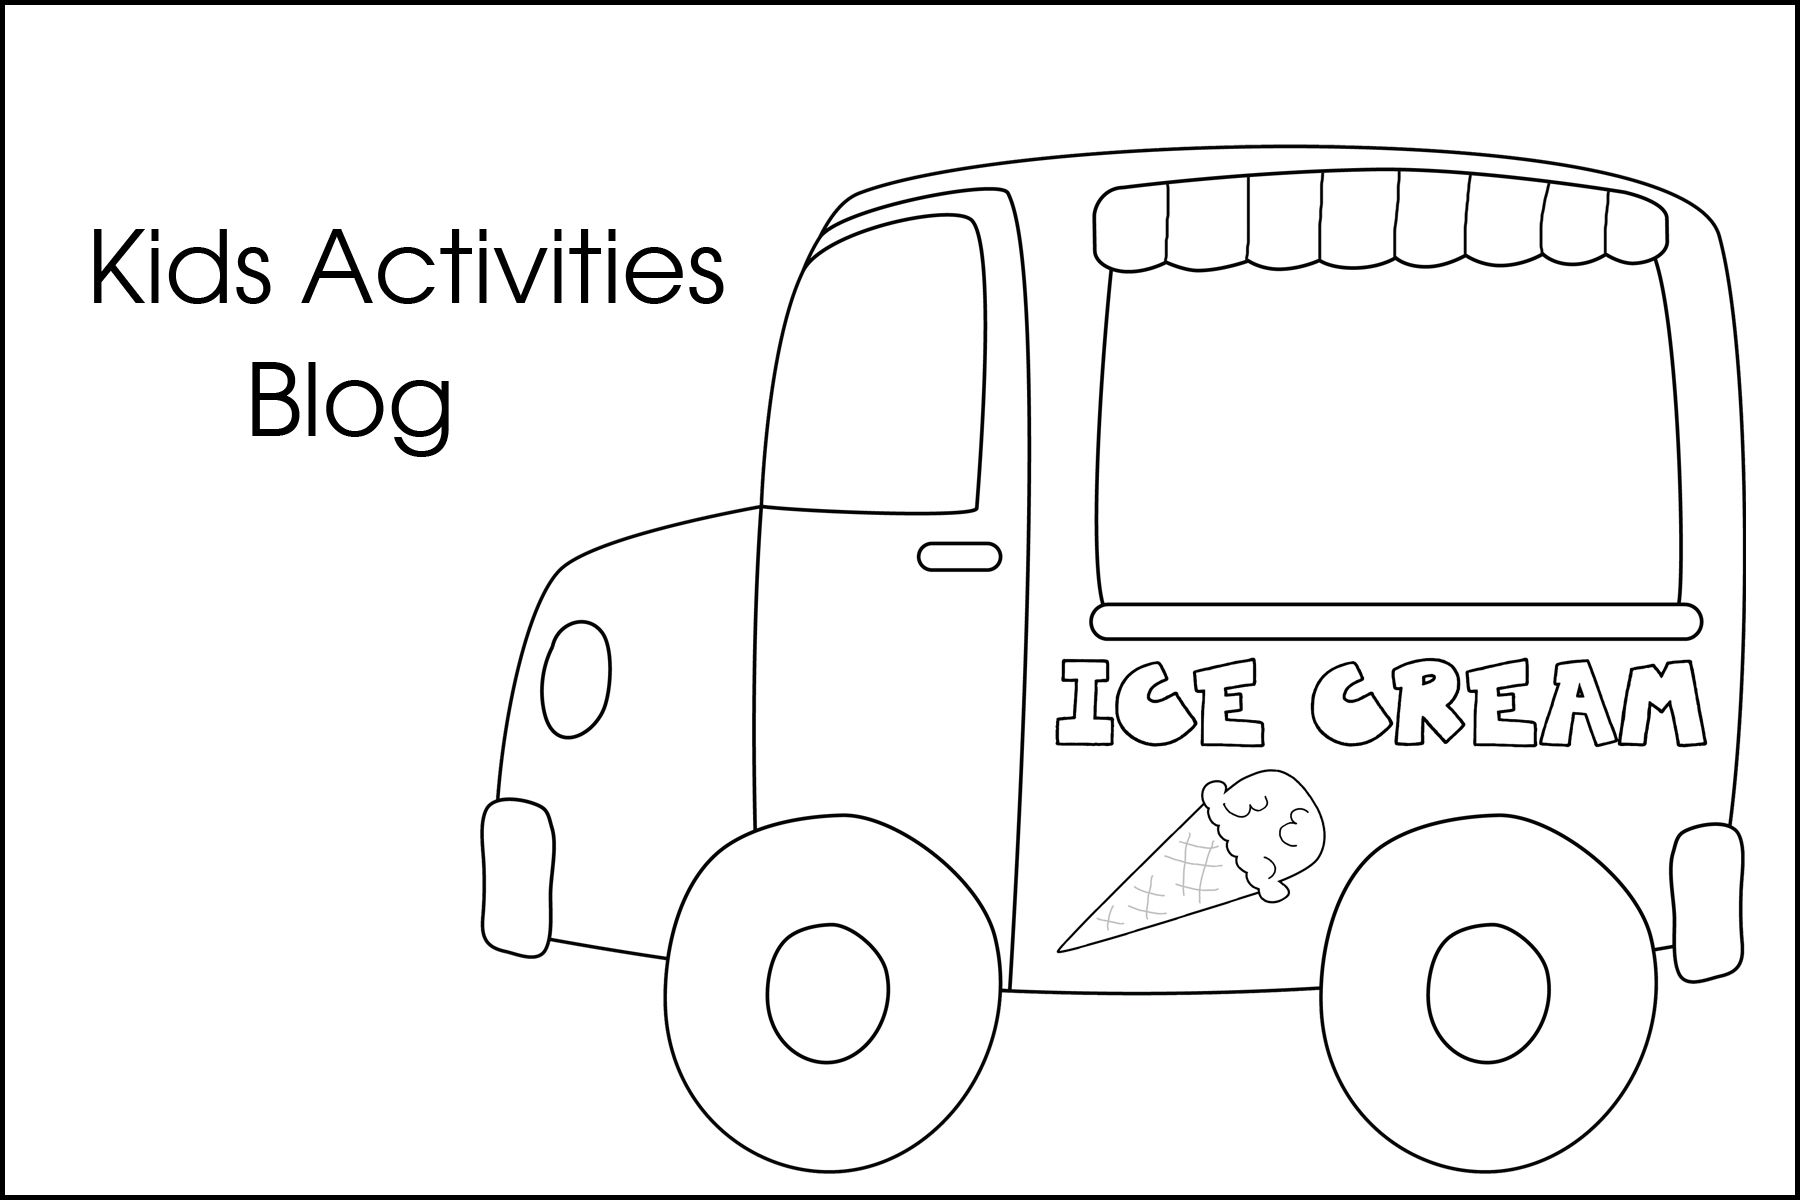 Ice Cream Coloring Pages Free Printable Ice Cream Coloring Pages Free Printable Coloring Pages Truck Coloring Pages